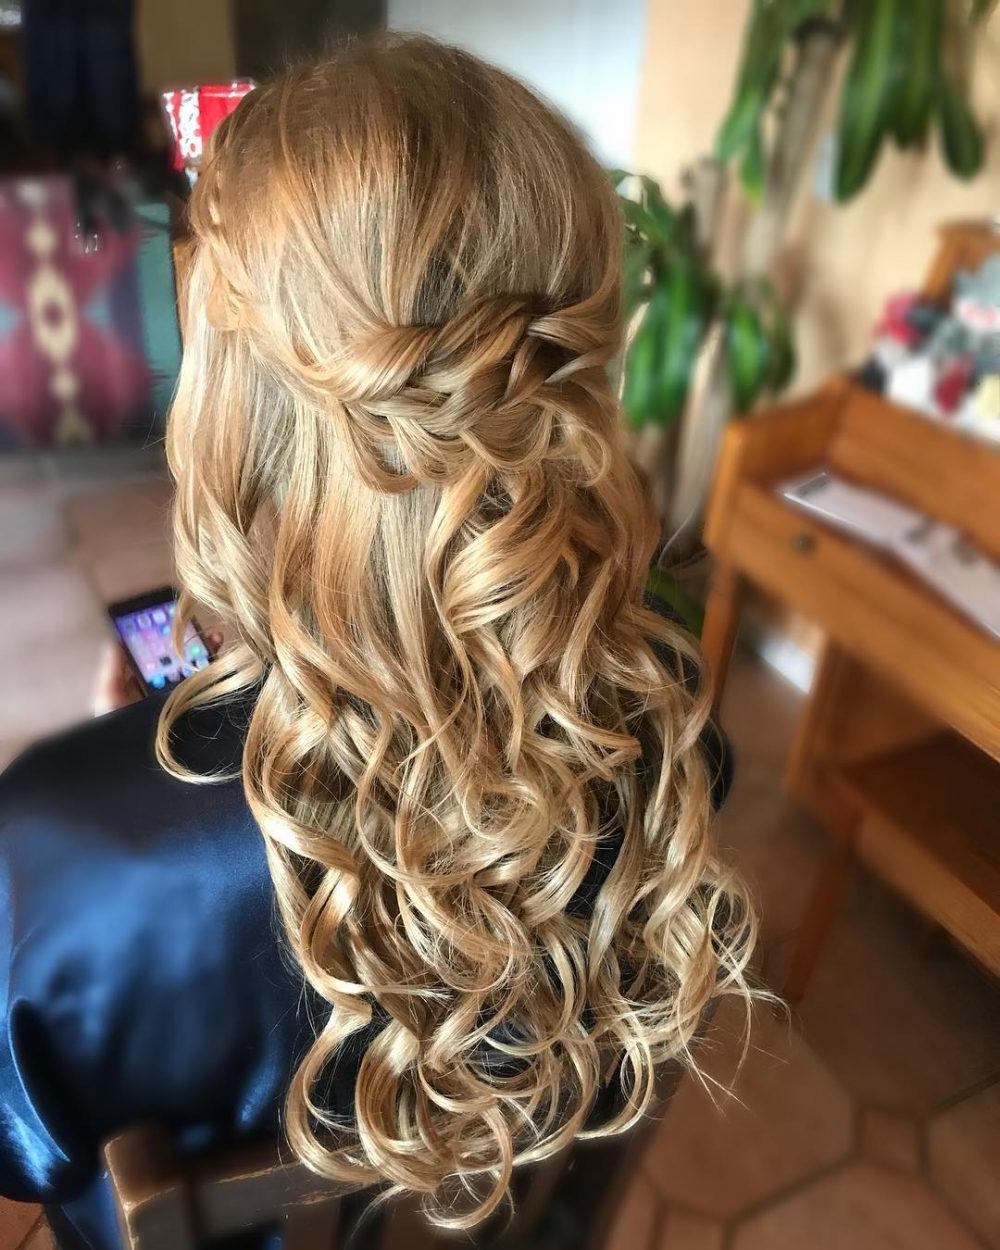 24 Gorgeous Wedding Hairstyles For Long Hair In 2019 Throughout Fashionable Large Curl Updos For Brides (View 3 of 20)